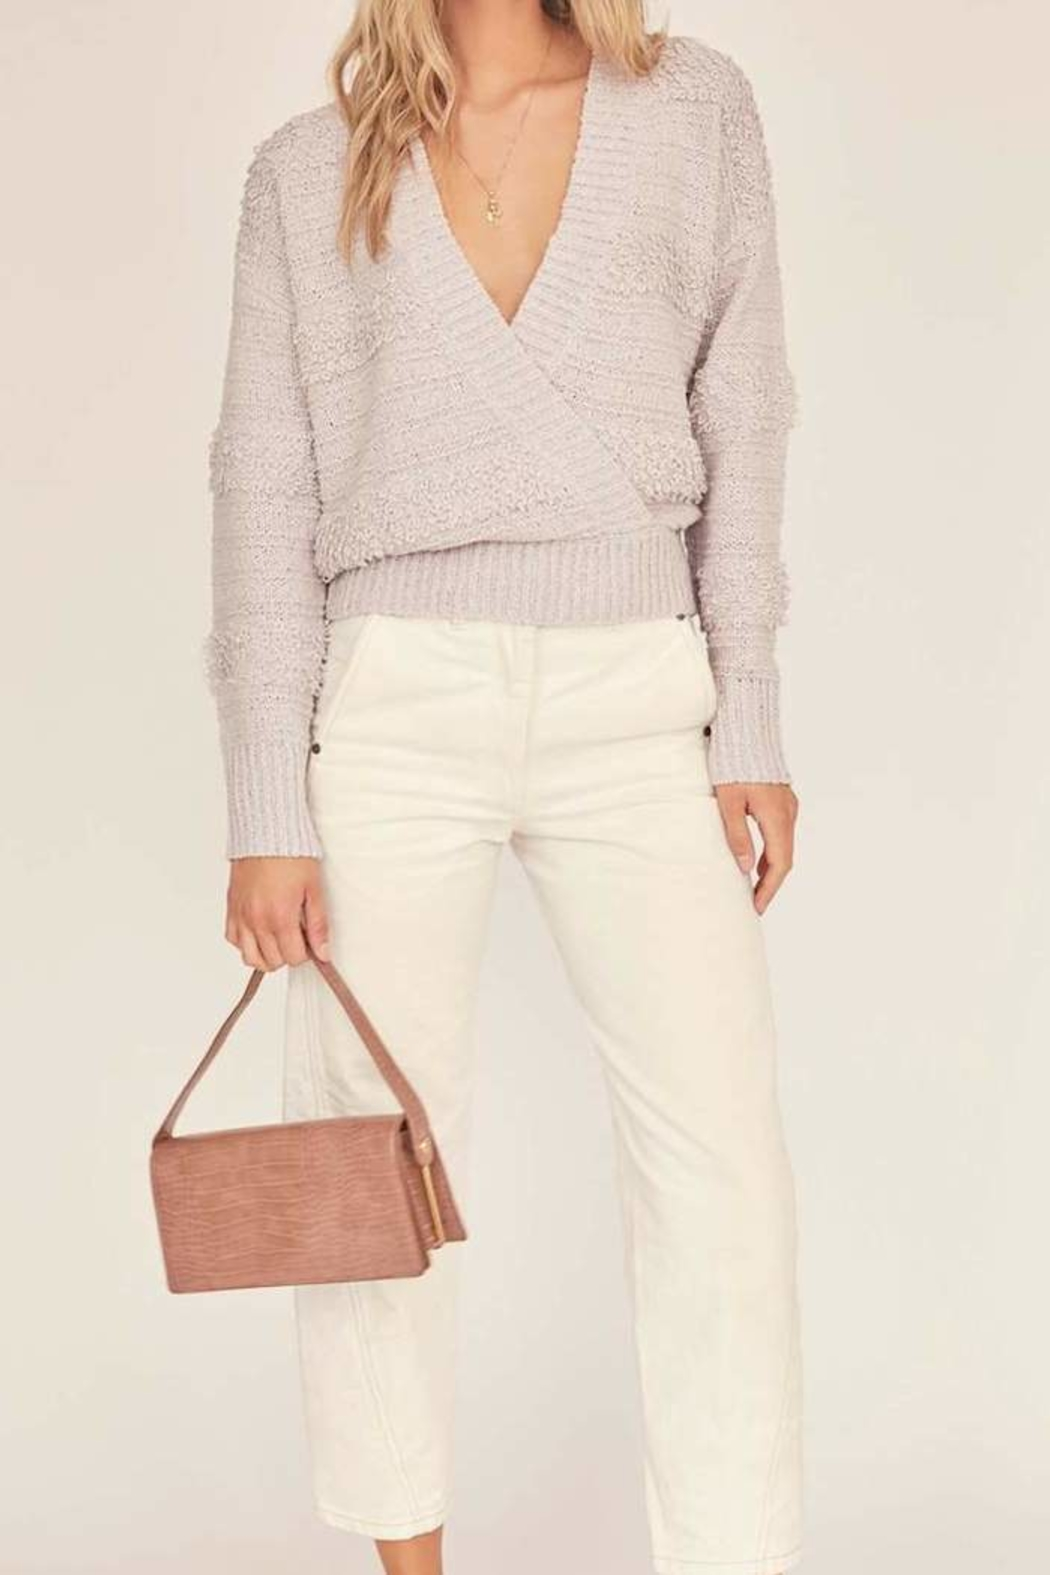 ASTR the Label Madeline Wrap Sweater - Main Image